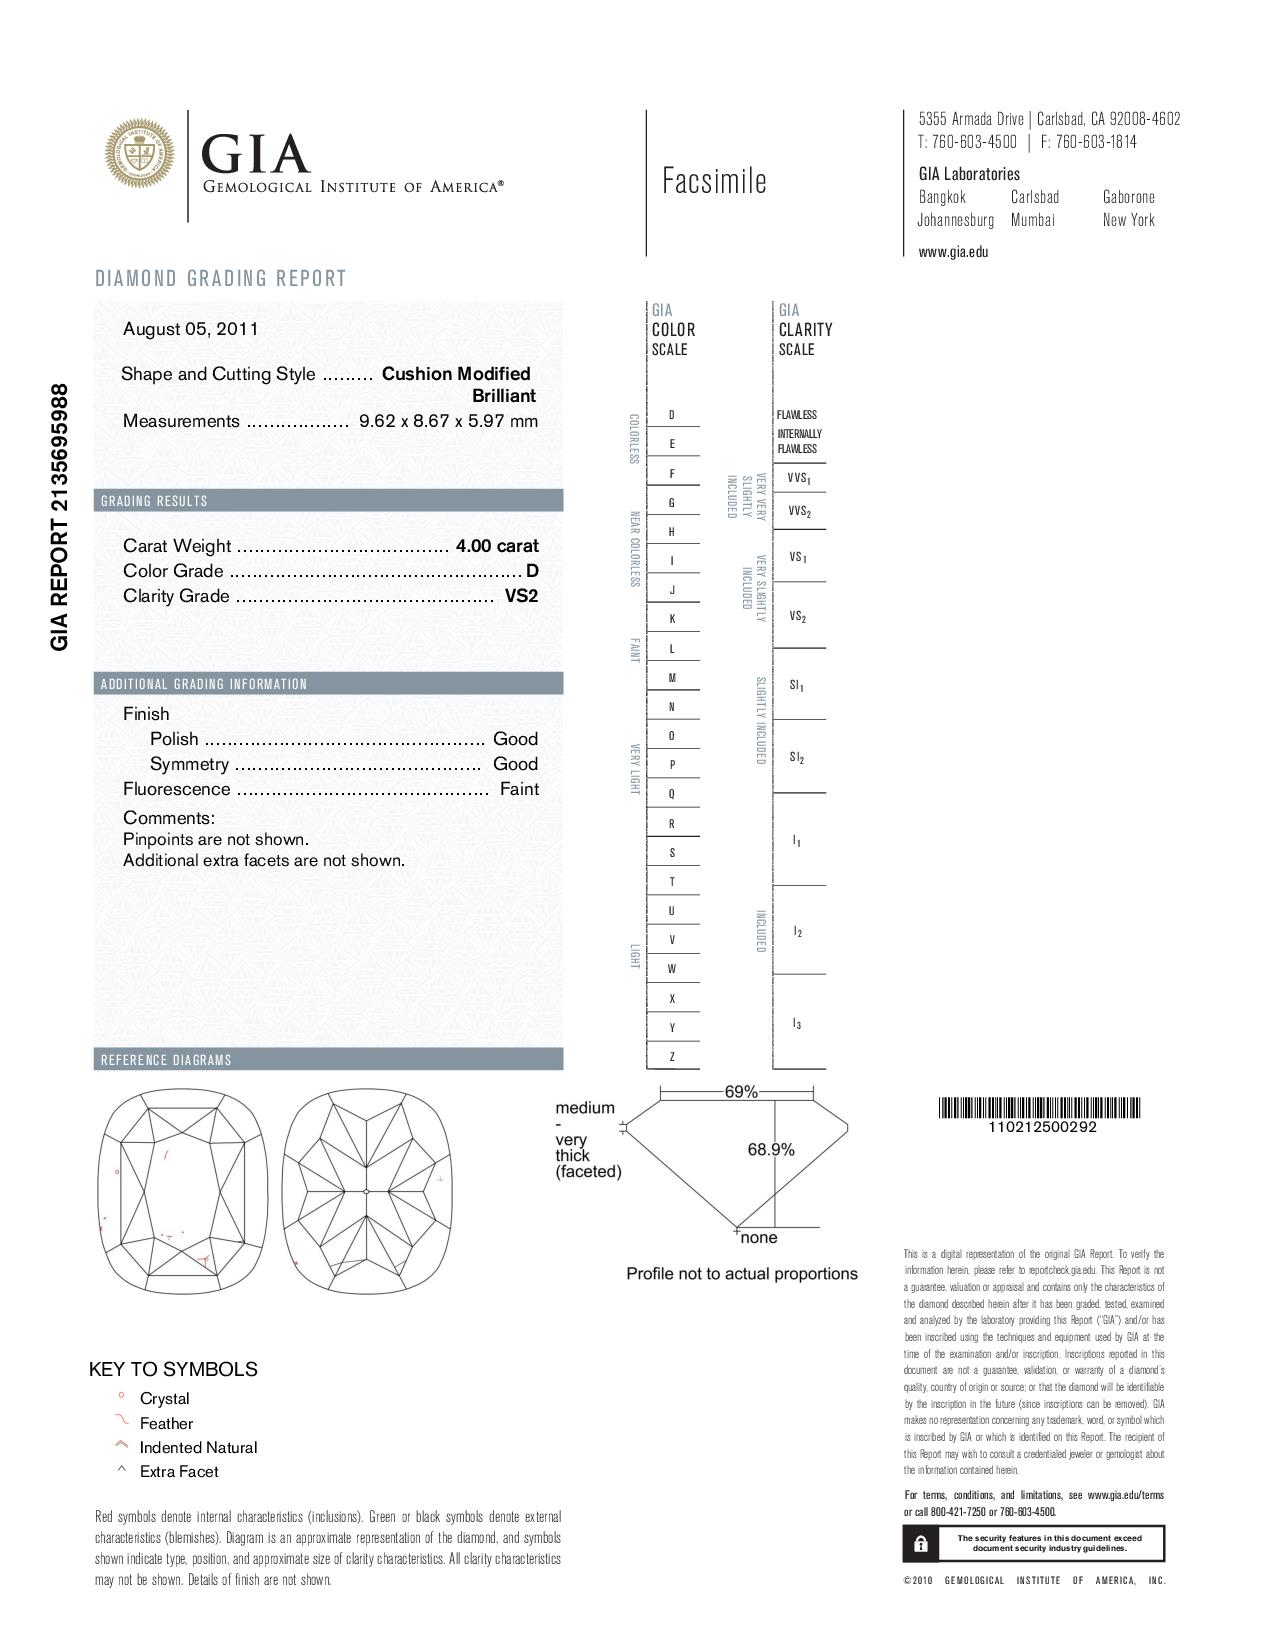 This is a 4.00 carat cushion shape, D color, VS2 clarity natural diamond accompanied by a GIA grading report.